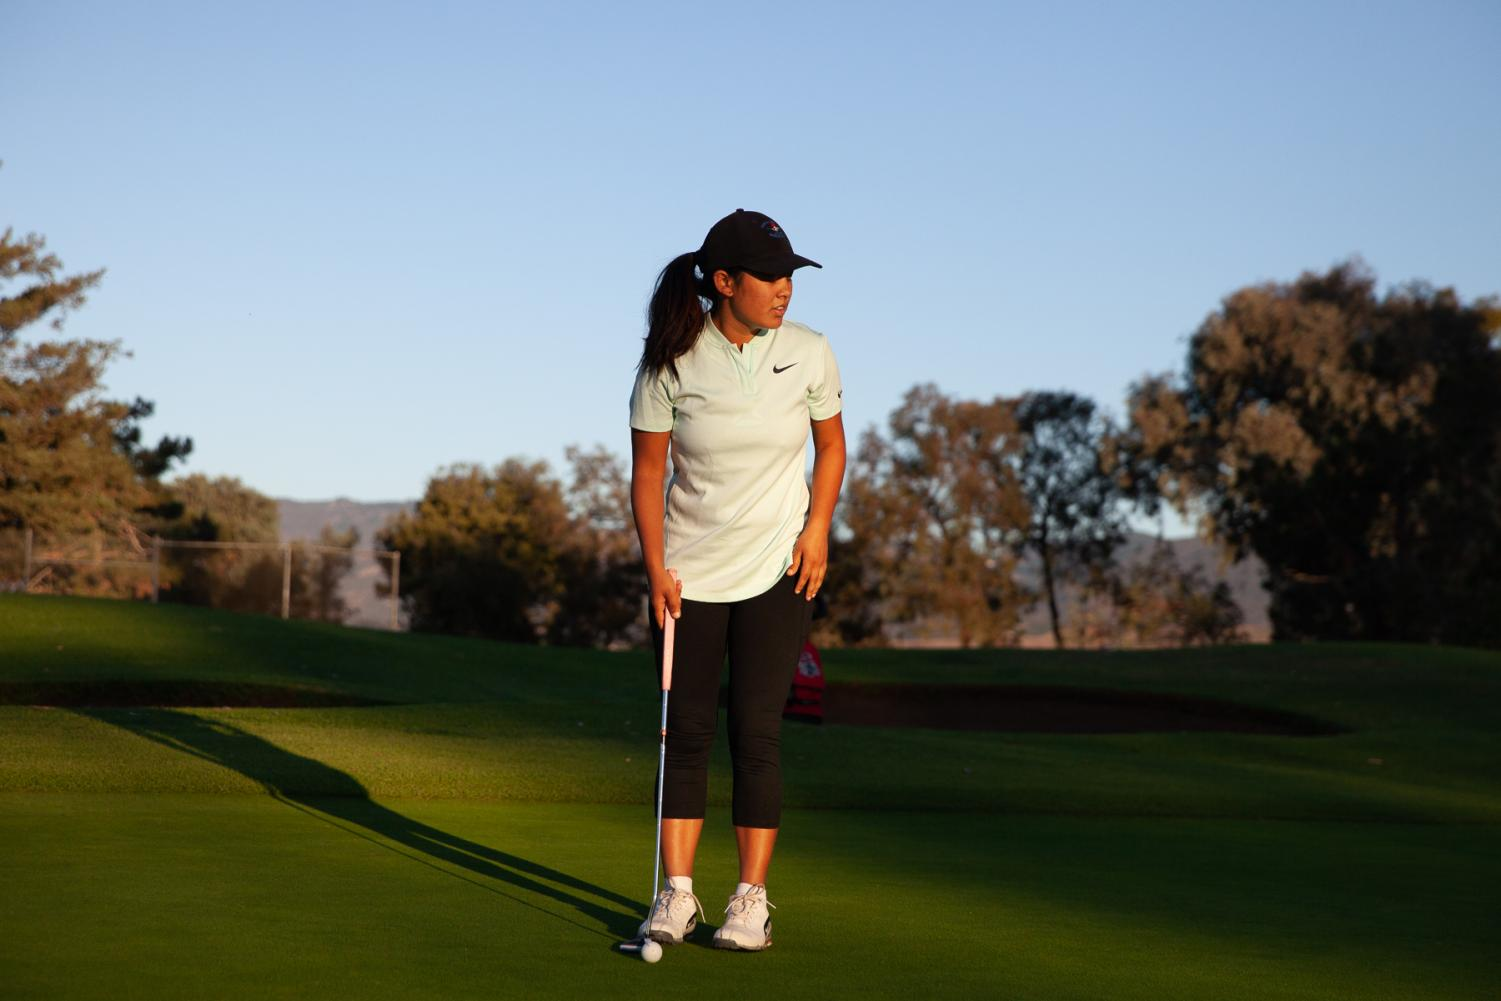 Pratima Sherpa stands on the hole five putting green at the Santa Barbara Golf Club during her 18 hole practice game early Wednesday, Oct. 23, 2019, in Santa Barbara, Calif. Sherpa is working to become the first pro female golfer from Nepal.